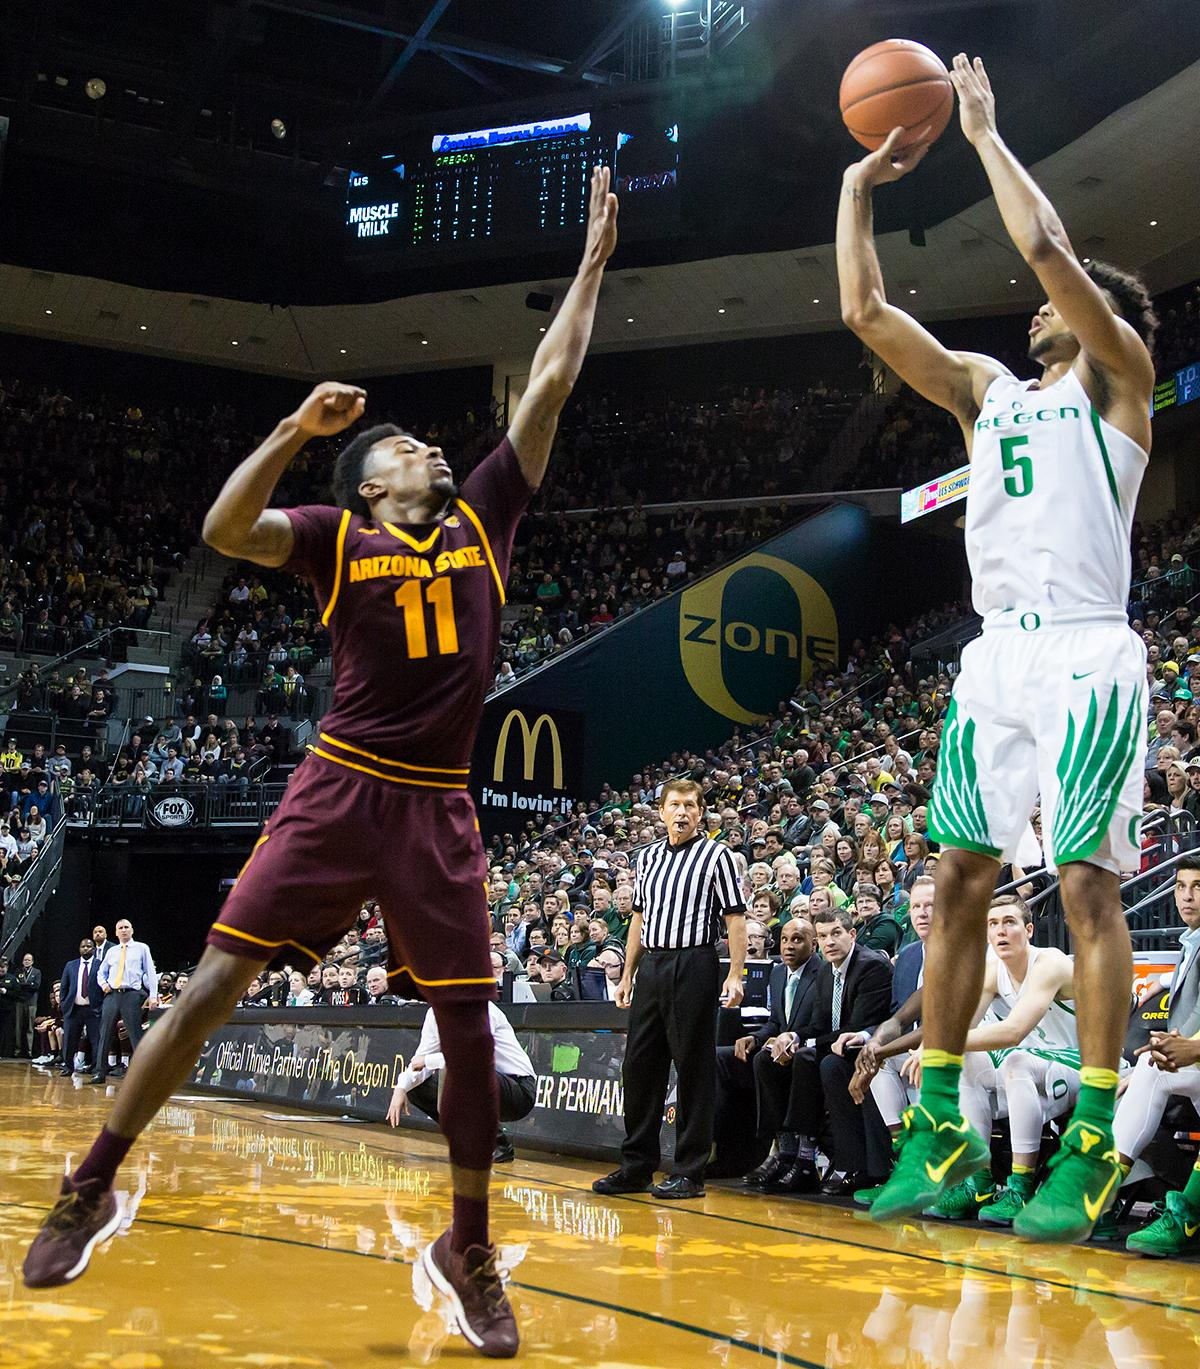 Oregon guard Tyler Dorsey (#5) leaps to make a three-pointer over the outstretched arms of Arizona State guard Shannon Evans II (#11). Dorsey finished the night with 11 points. The Oregon Ducks defeated the Arizona State Sun Devils 71 to 70. Photo by Ben Lonergan, Oregon News Lab